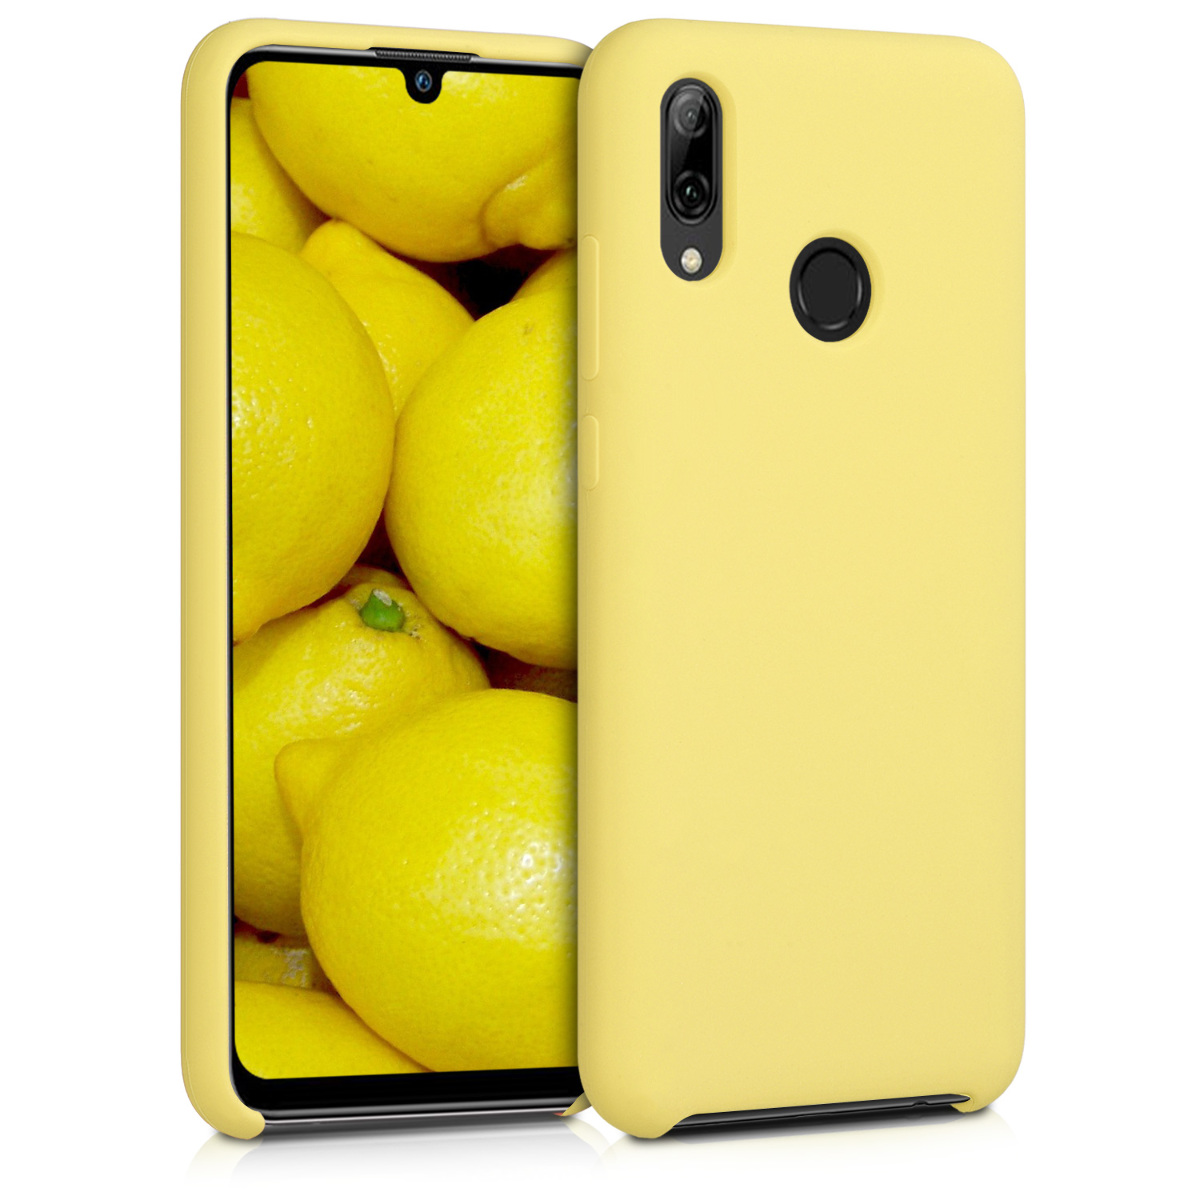 KW Θήκη Σιλικόνης Huawei P Smart 2019 - Soft Flexible Rubber - Yellow Matte (47824.49)